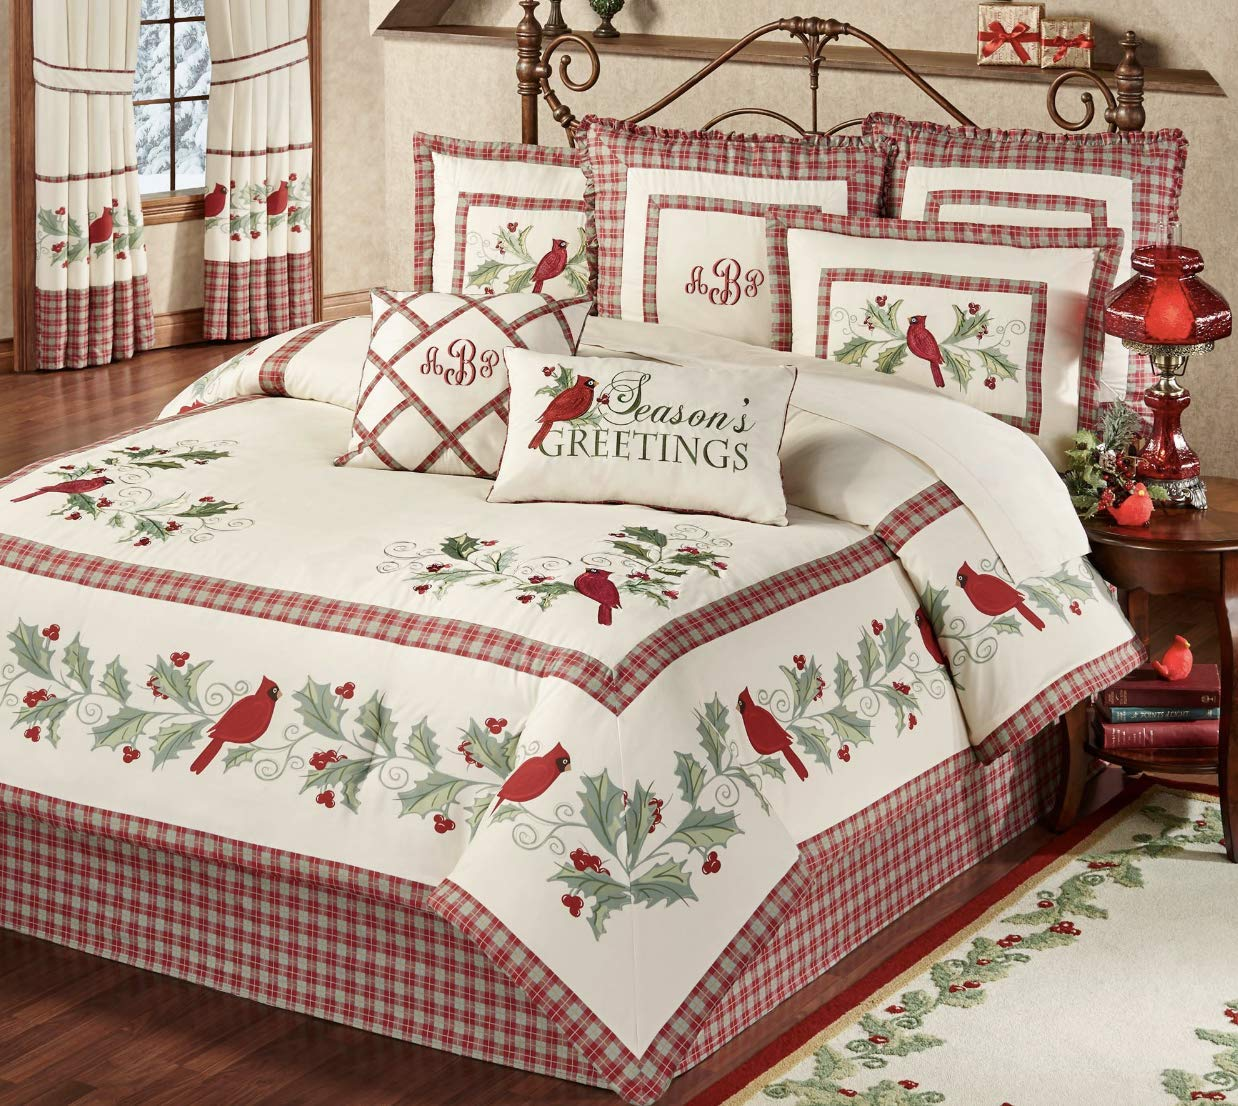 Christmas Comforter.Amazon Com Touch Of Class Red Bird Cardinal Comforter Set